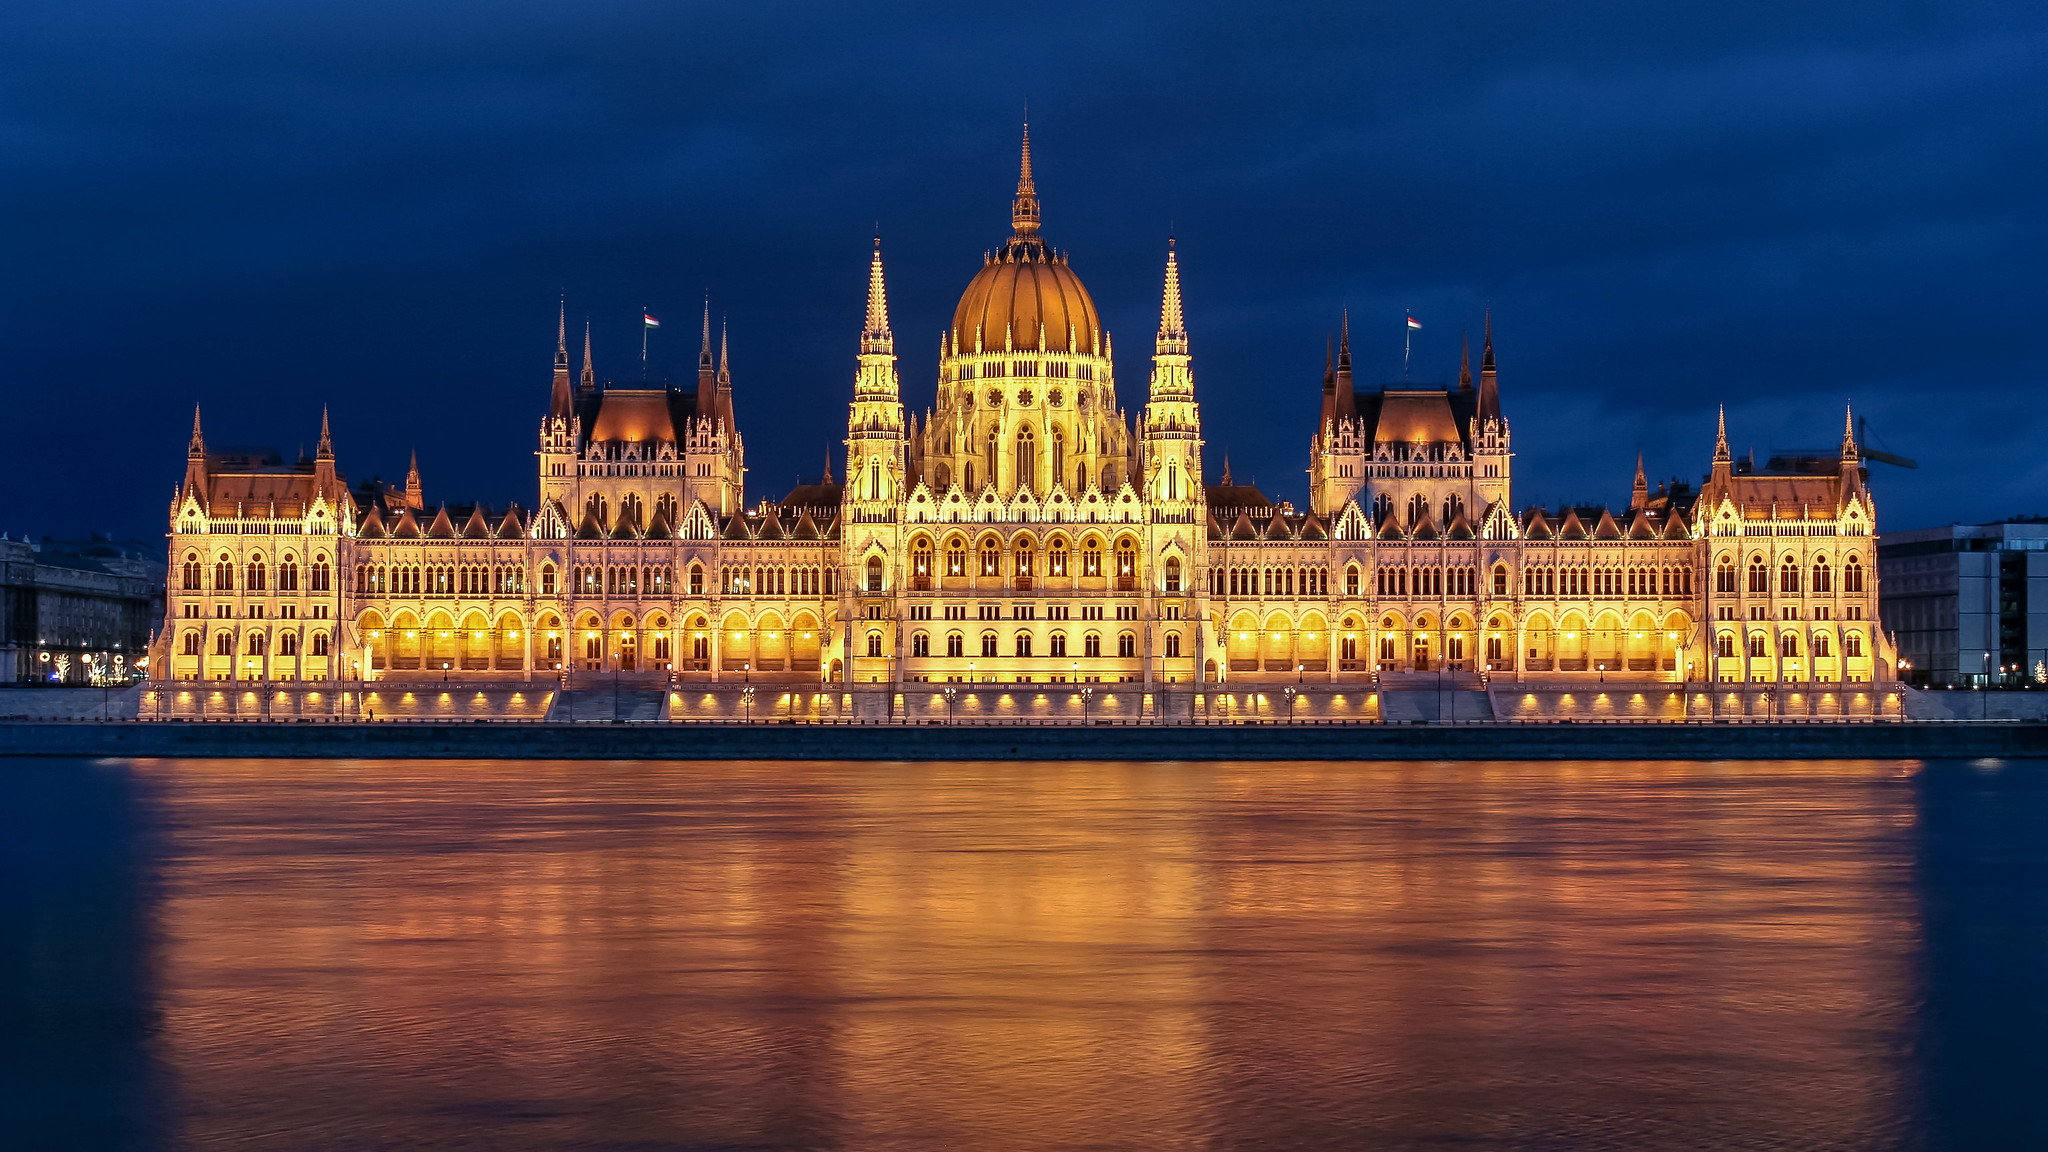 Anthony Bourdain Budapest - The Hungarian Parliament Building in Budapest - photo by Jorge Franganillo under CC BY 2.0